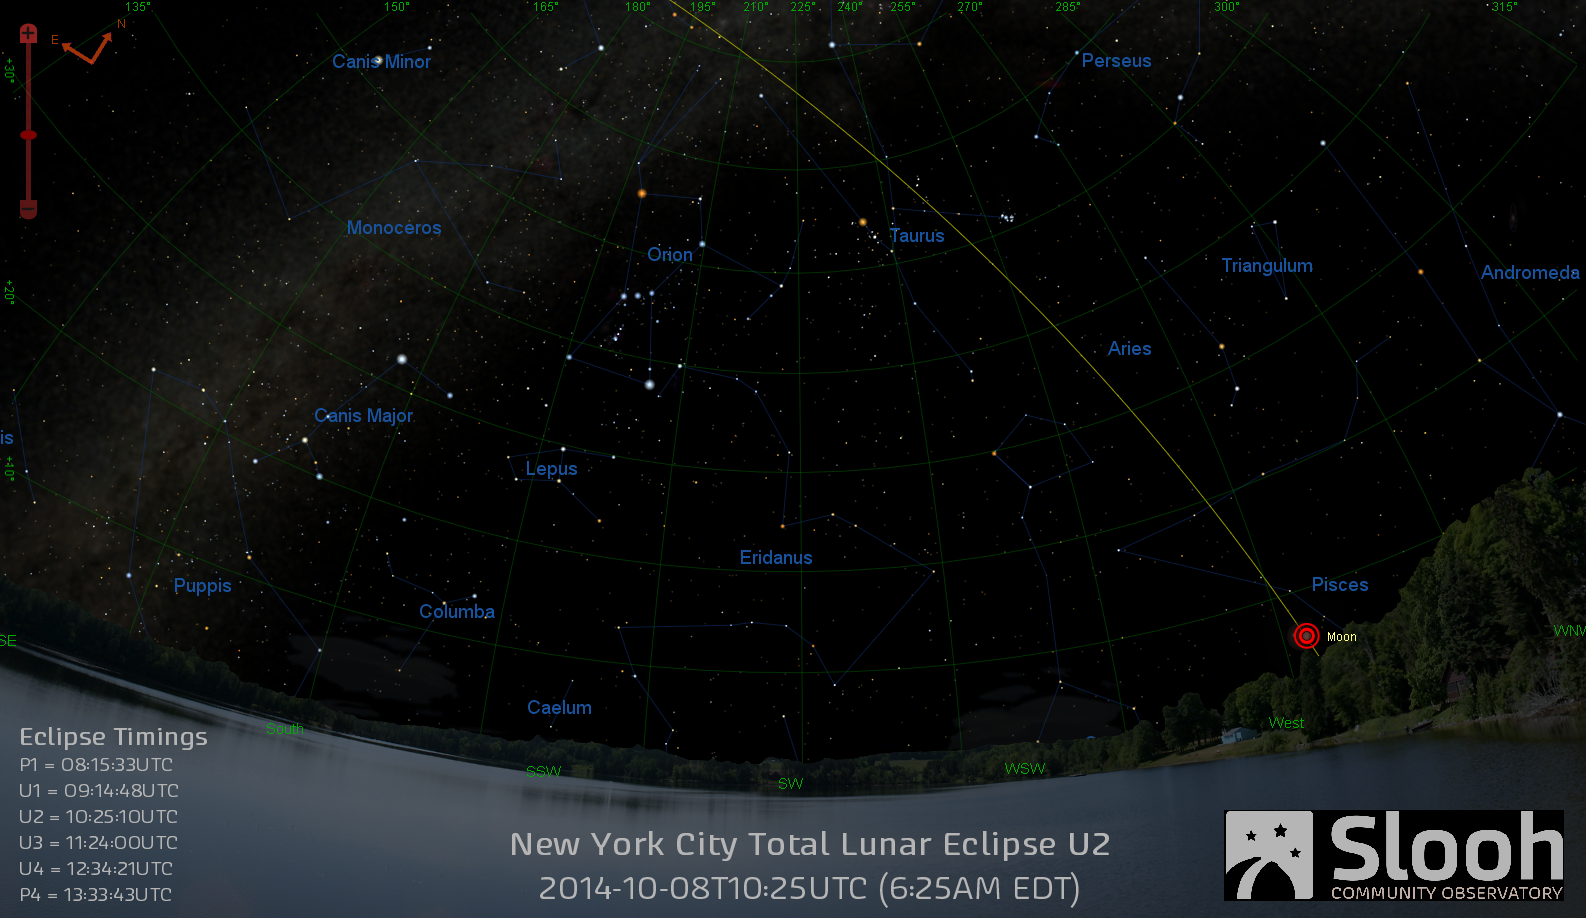 Oct. 8, 2014 Lunar Eclipse Sky Map for New York City